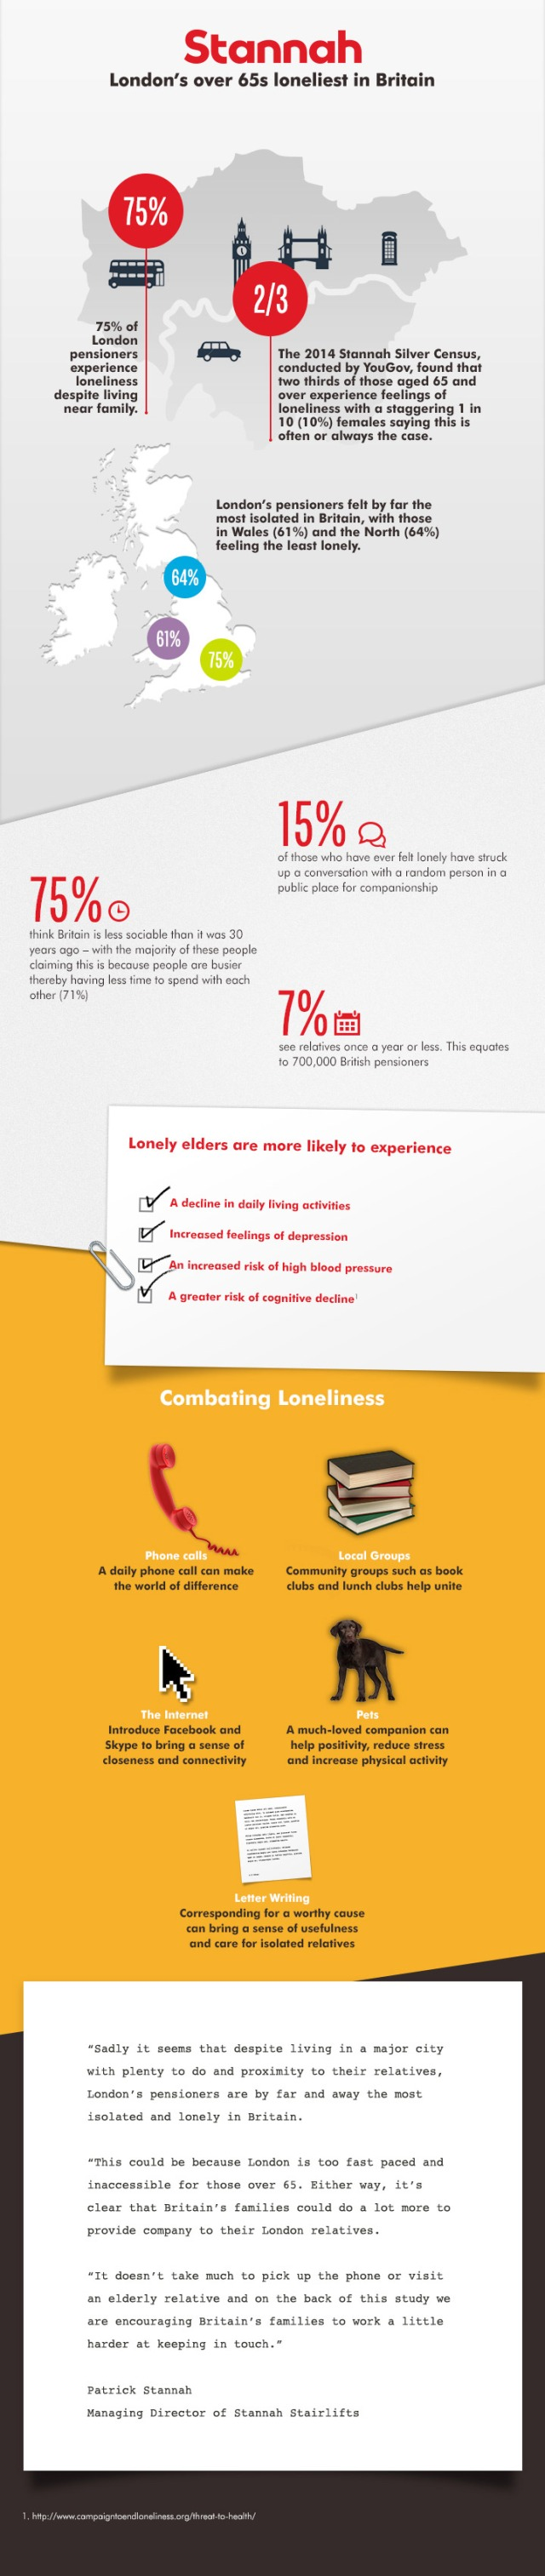 Combating Loneliness (1)